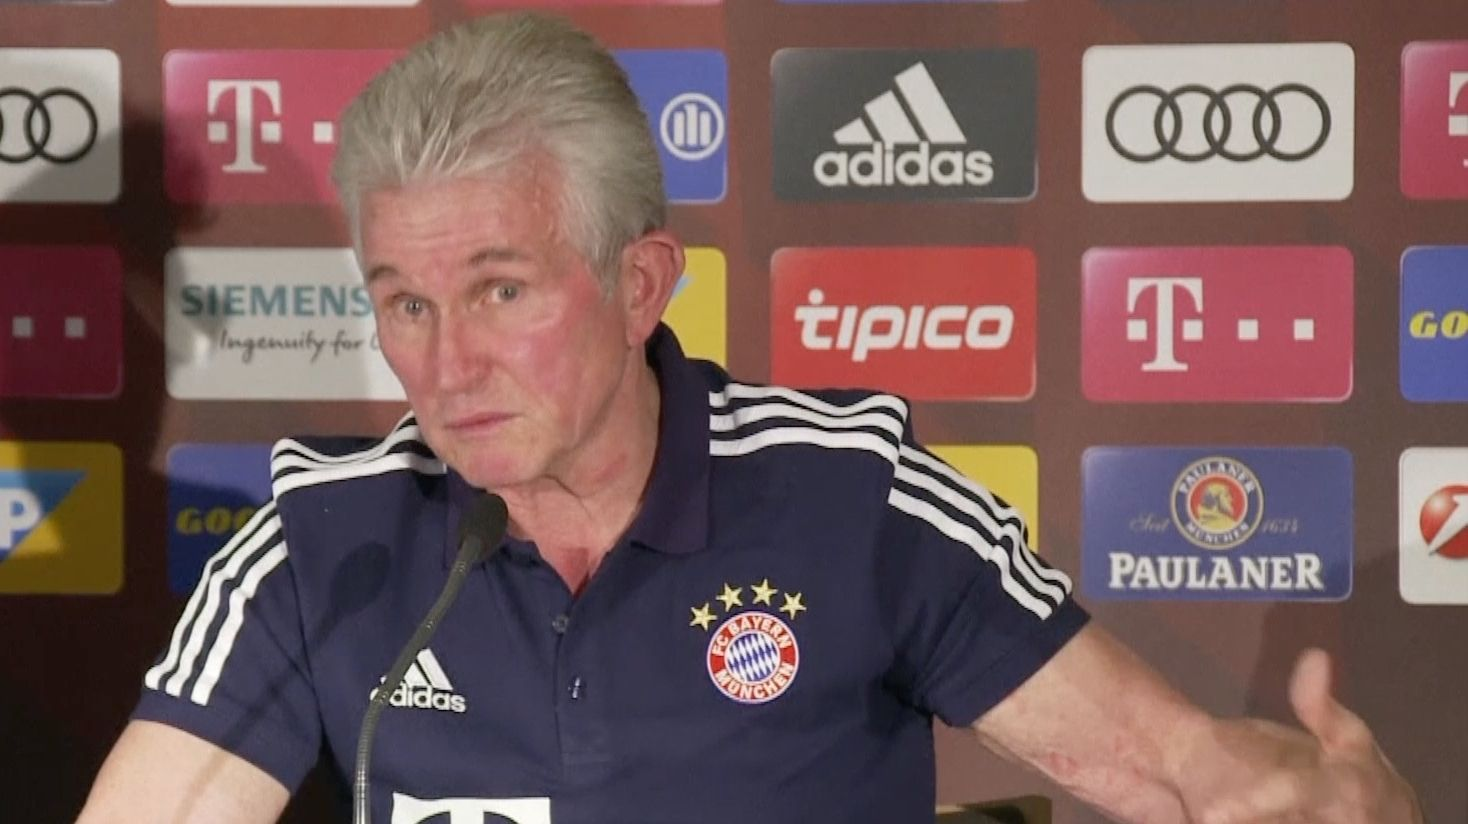 Jupp Heynckes backs Bayern Munich fans' protest over ticket prices